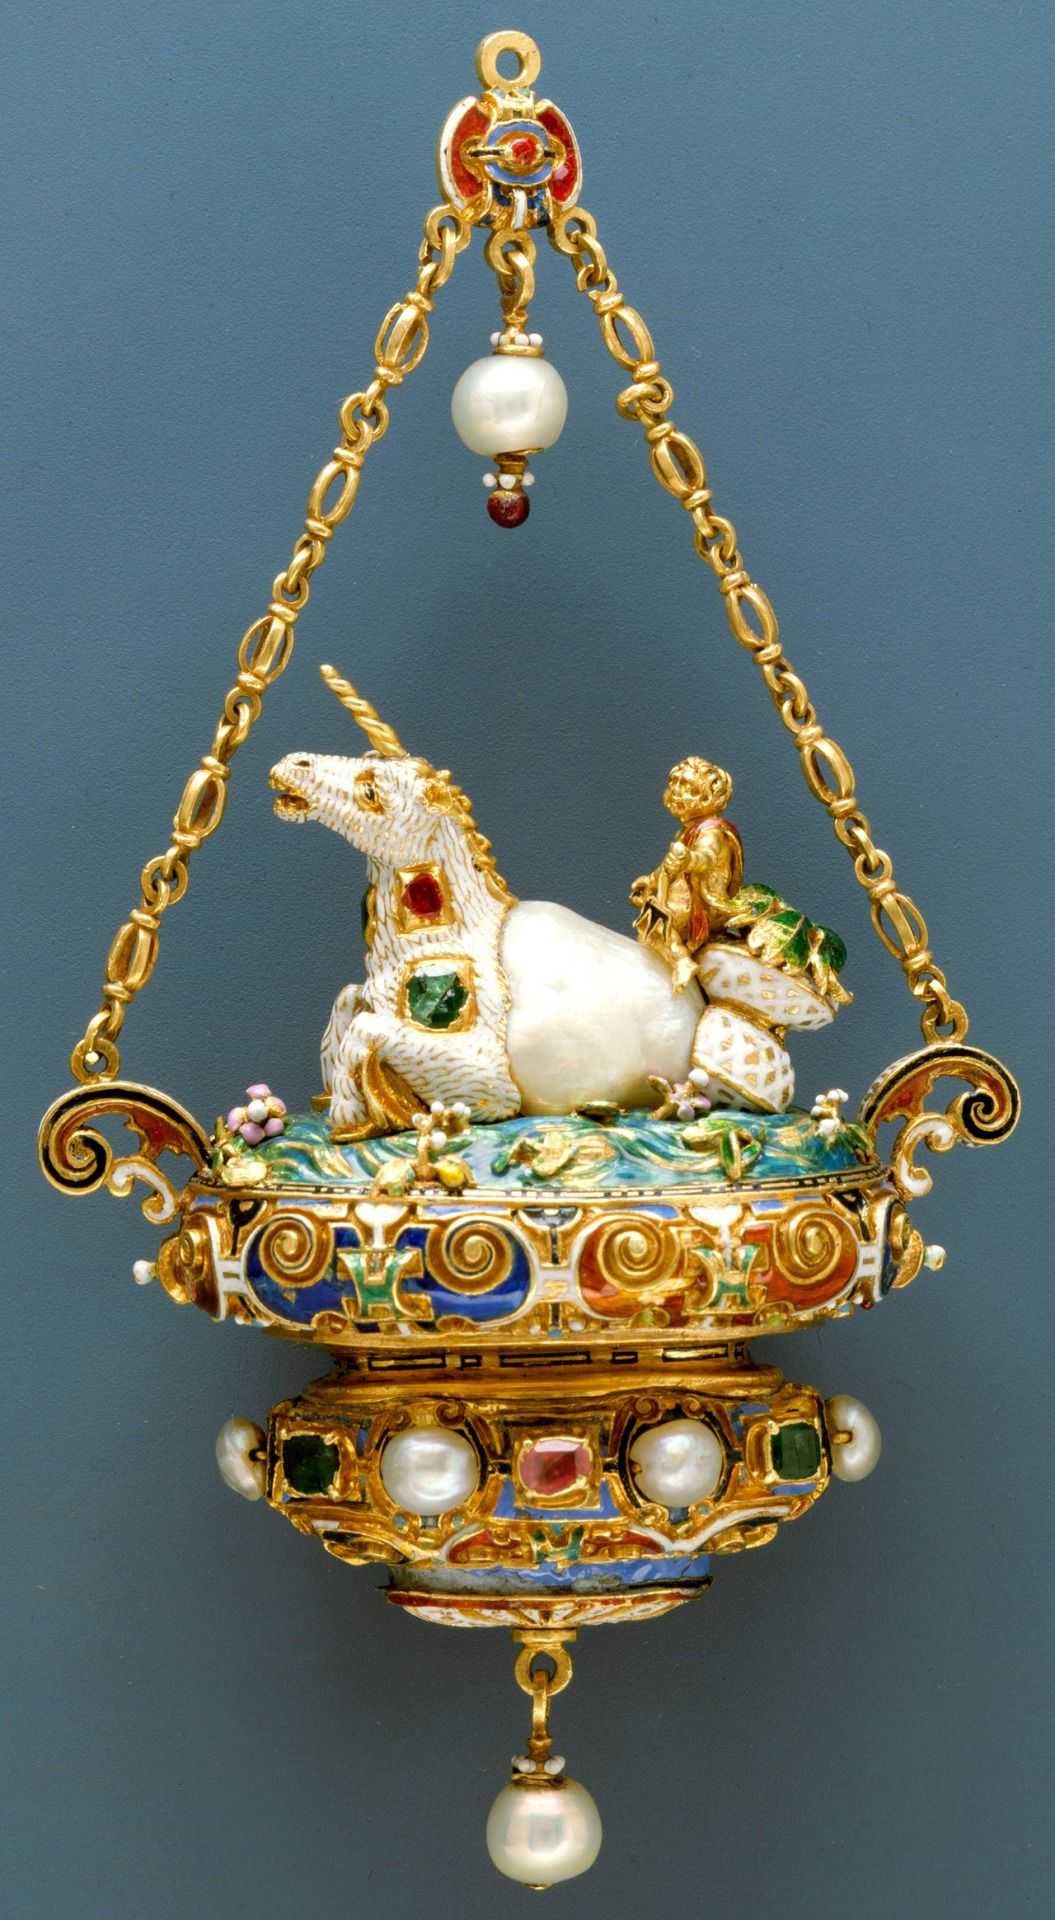 Gold and enamel pendant set with pearls emeralds and rubies